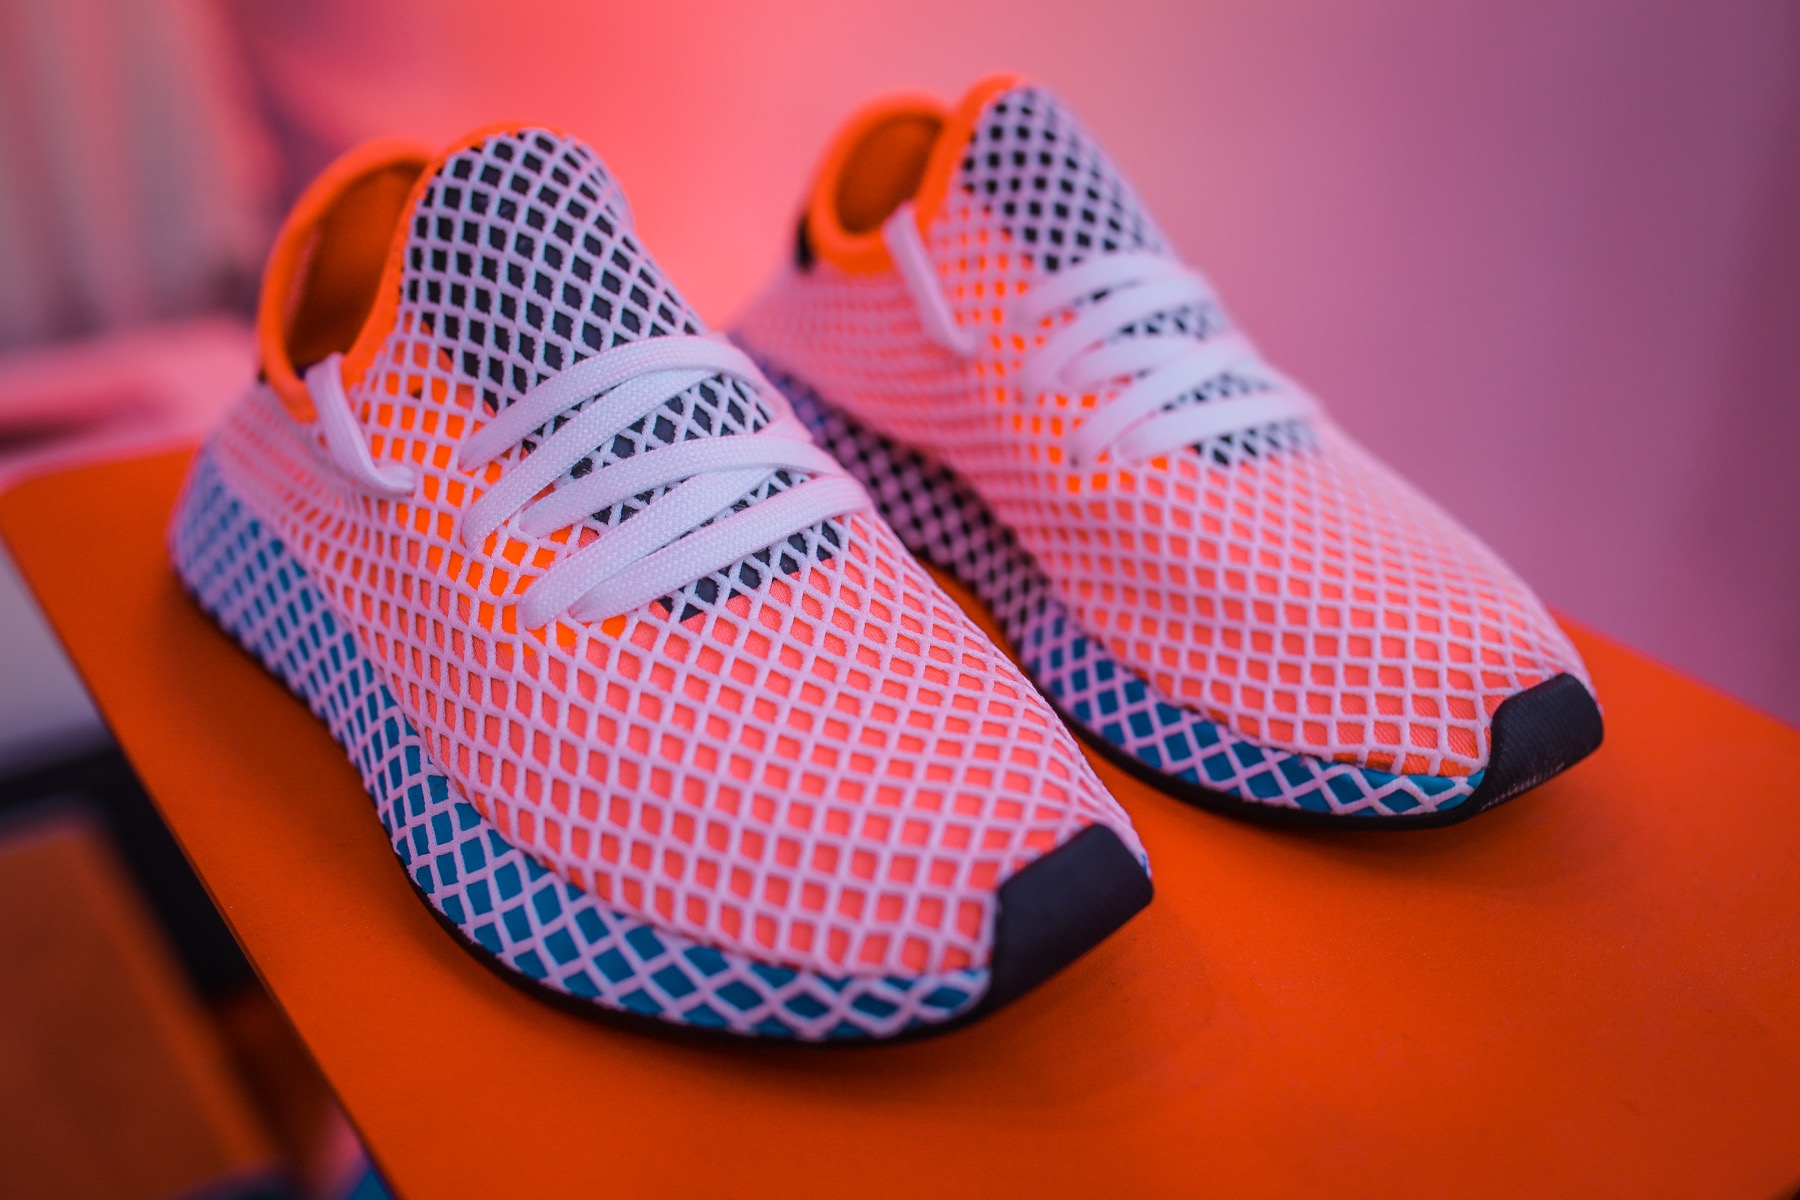 Homegrown India presents HGStreet in Mumbai on March 18, 2018, a celebration of sneaker and street culture - launch of adidas Deerupt by adidas Originals at the Deerupt Experience976A5637.jpg